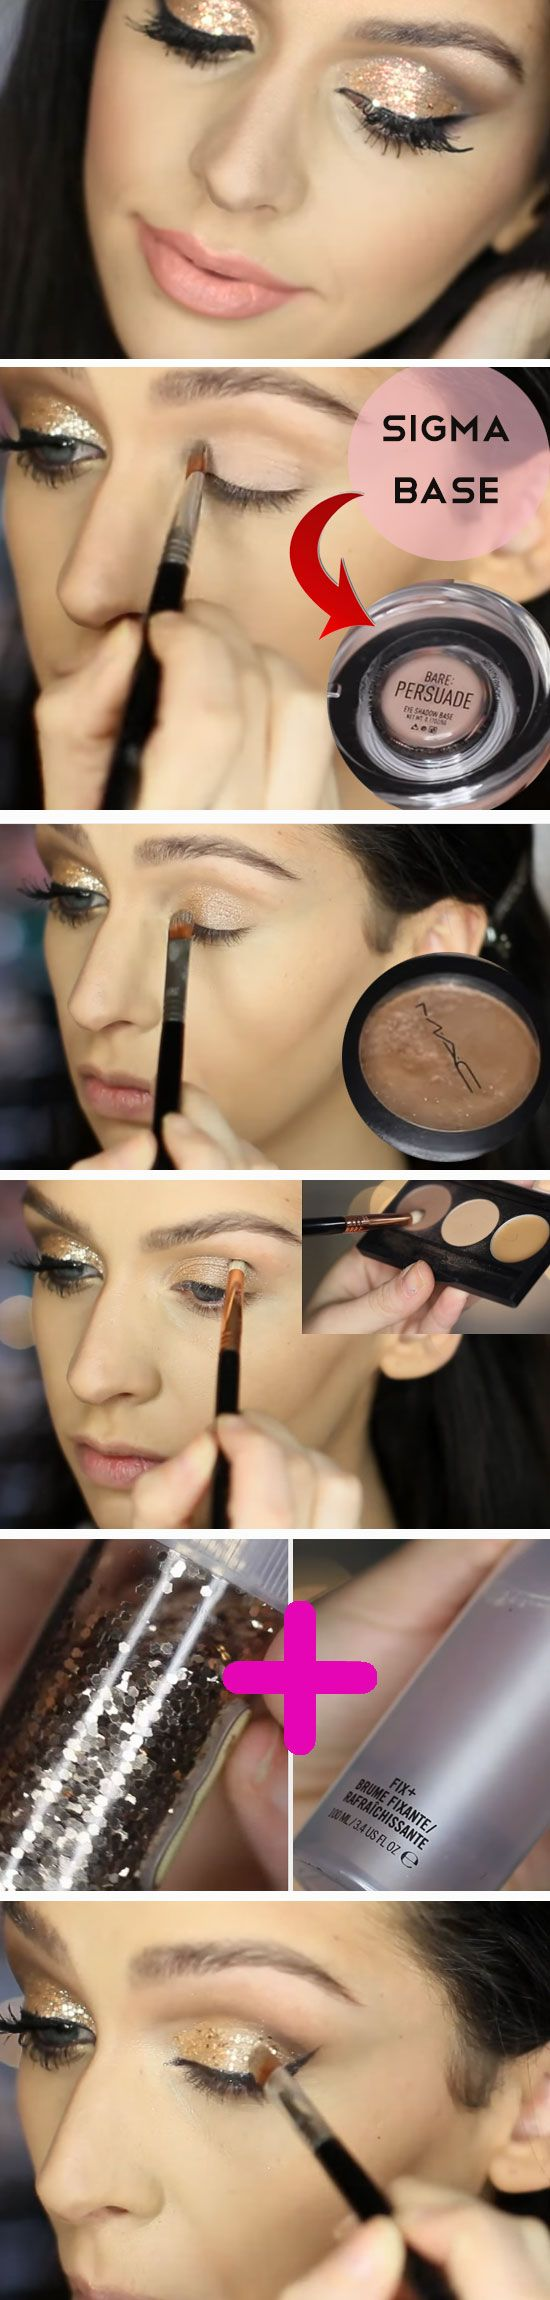 18 Awesome Prom Makeup Ideas for Blue Eyes | Auge, Haar und beauty ...